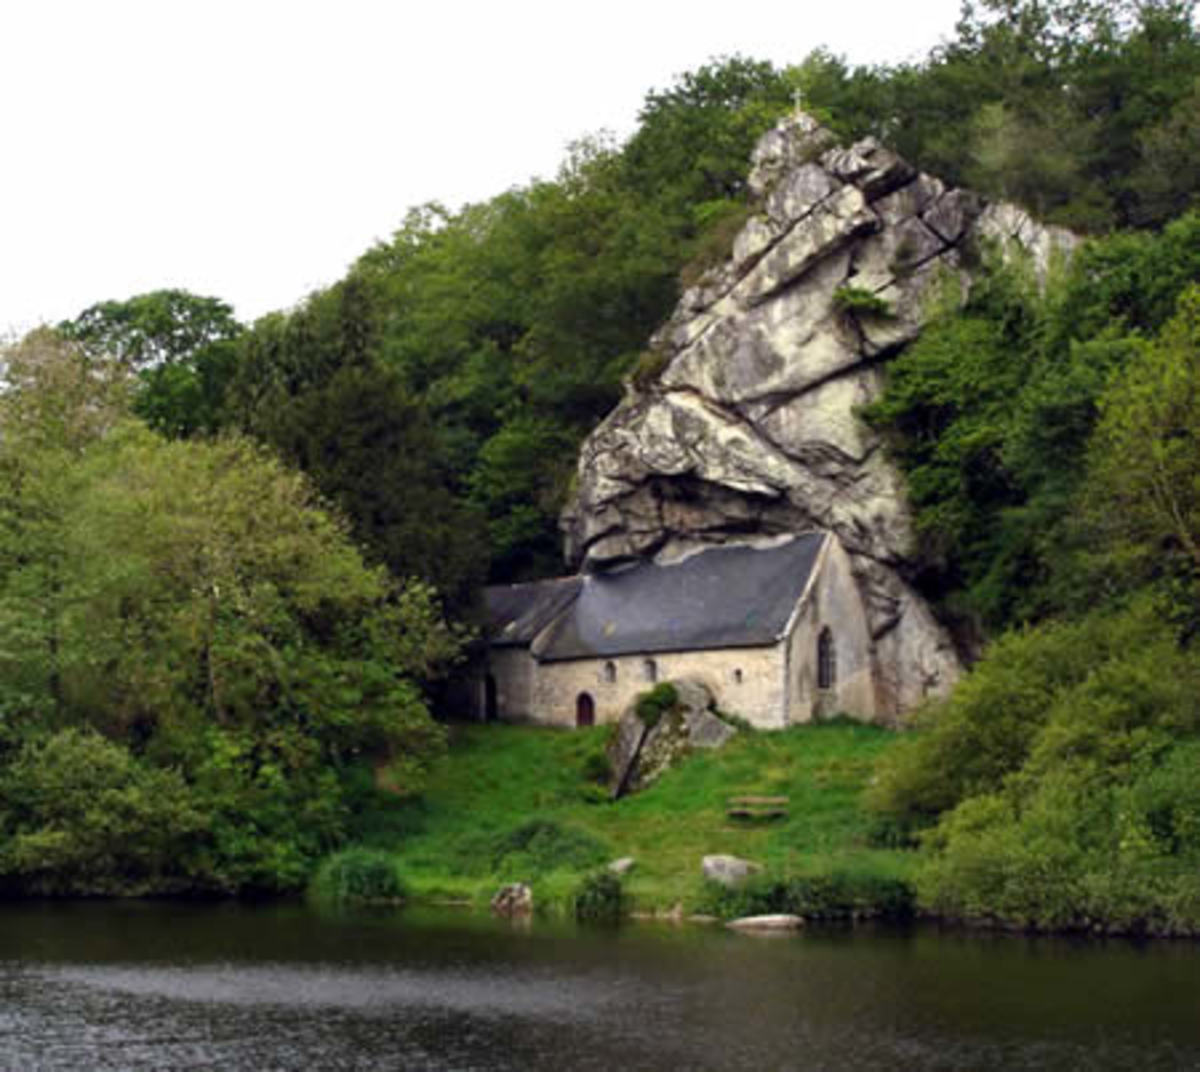 St Ghildas Chapel -  Built at the base of a stone cliff